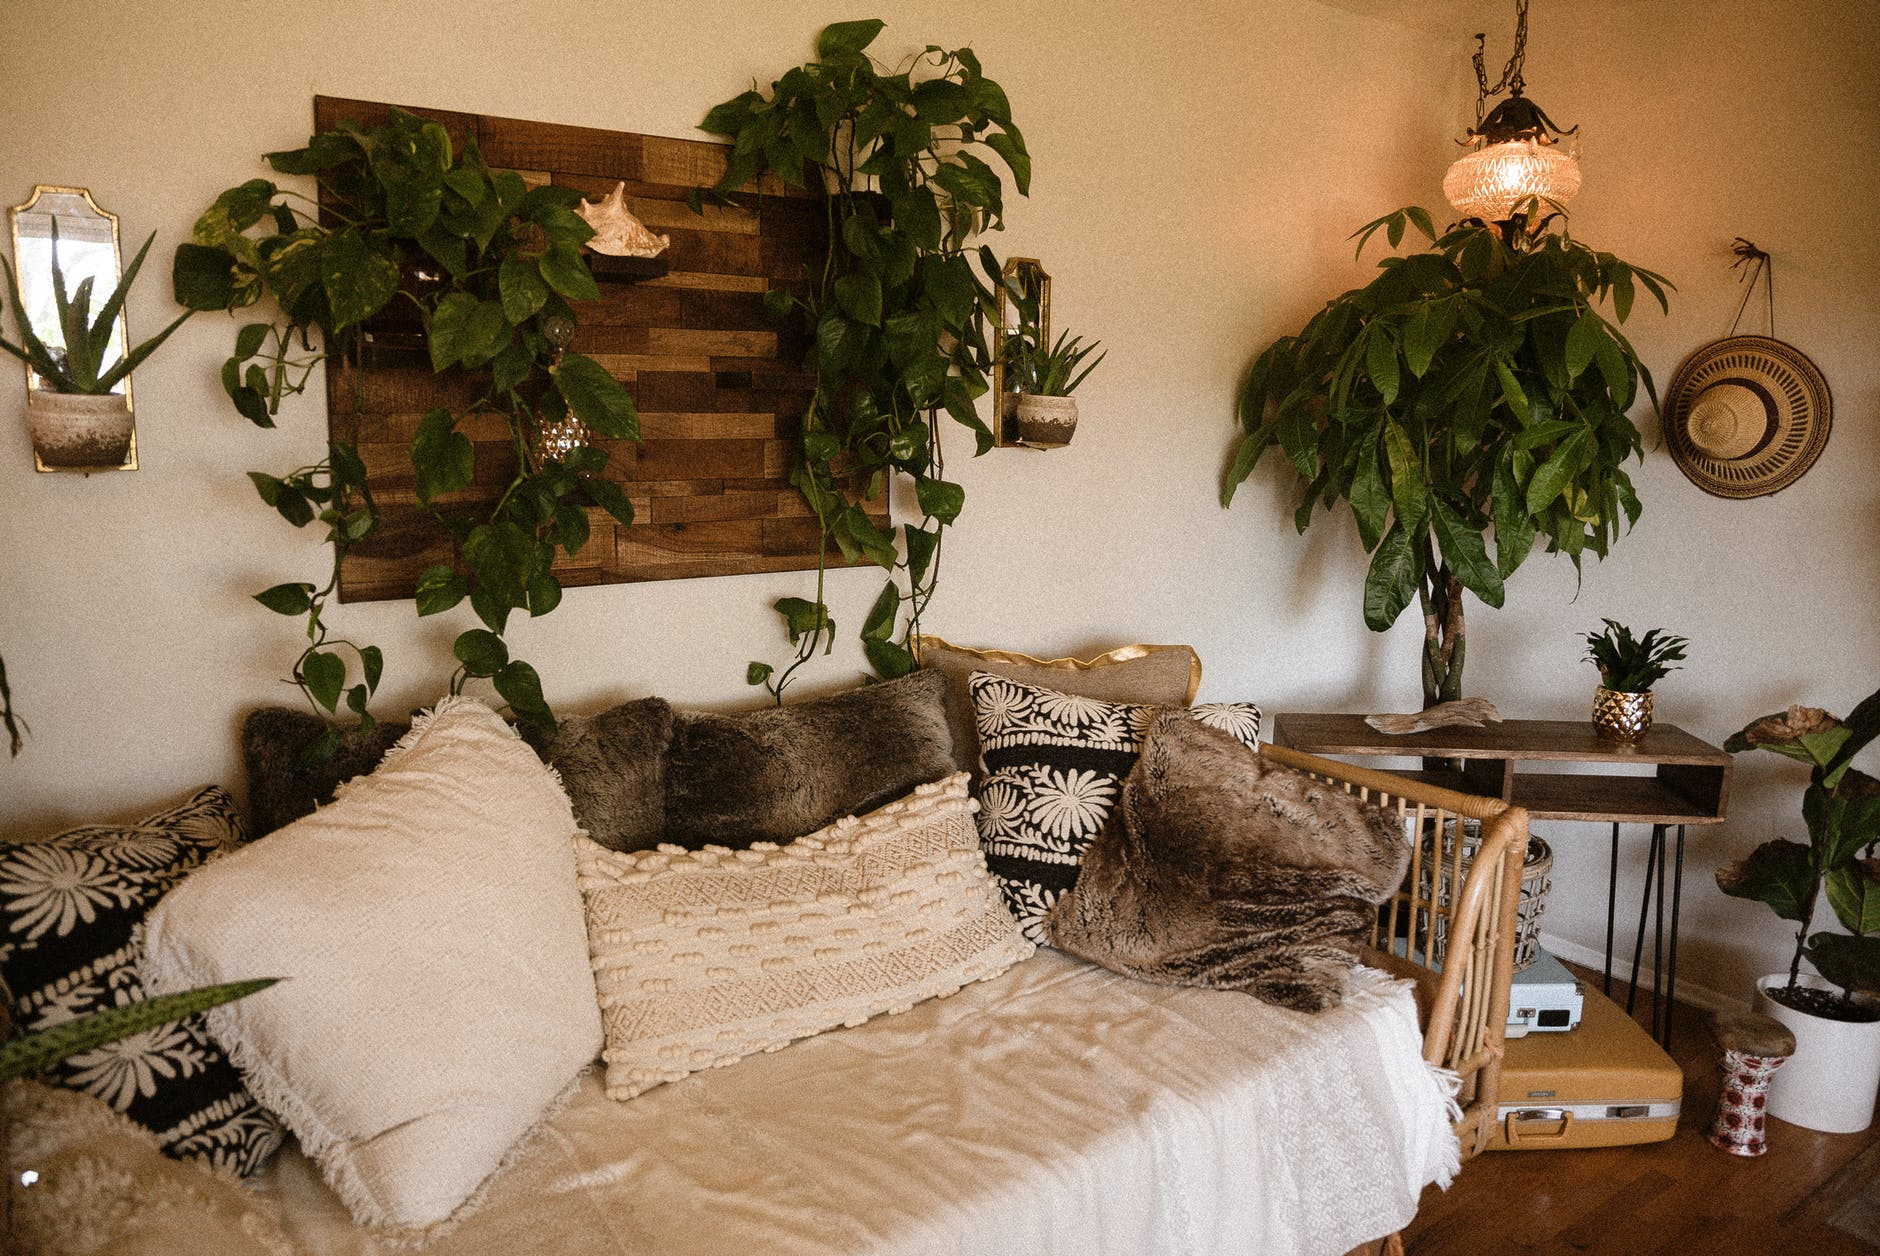 living room with green plant